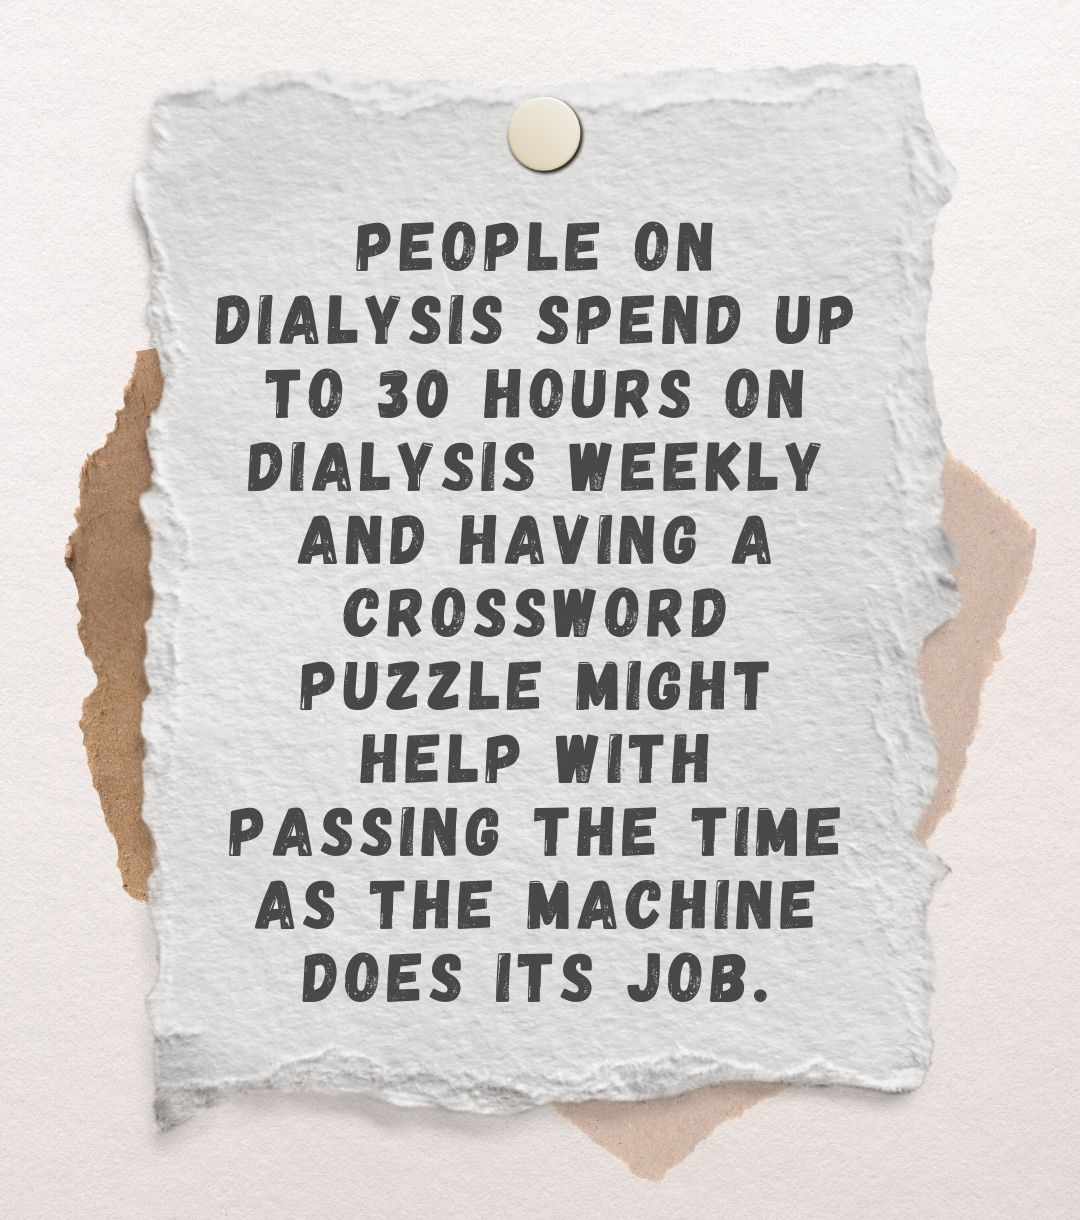 People on dialysis spend up to 30 hours on dialysis weekly and having a crossword puzzle might help with passing the time as the machine does its job.